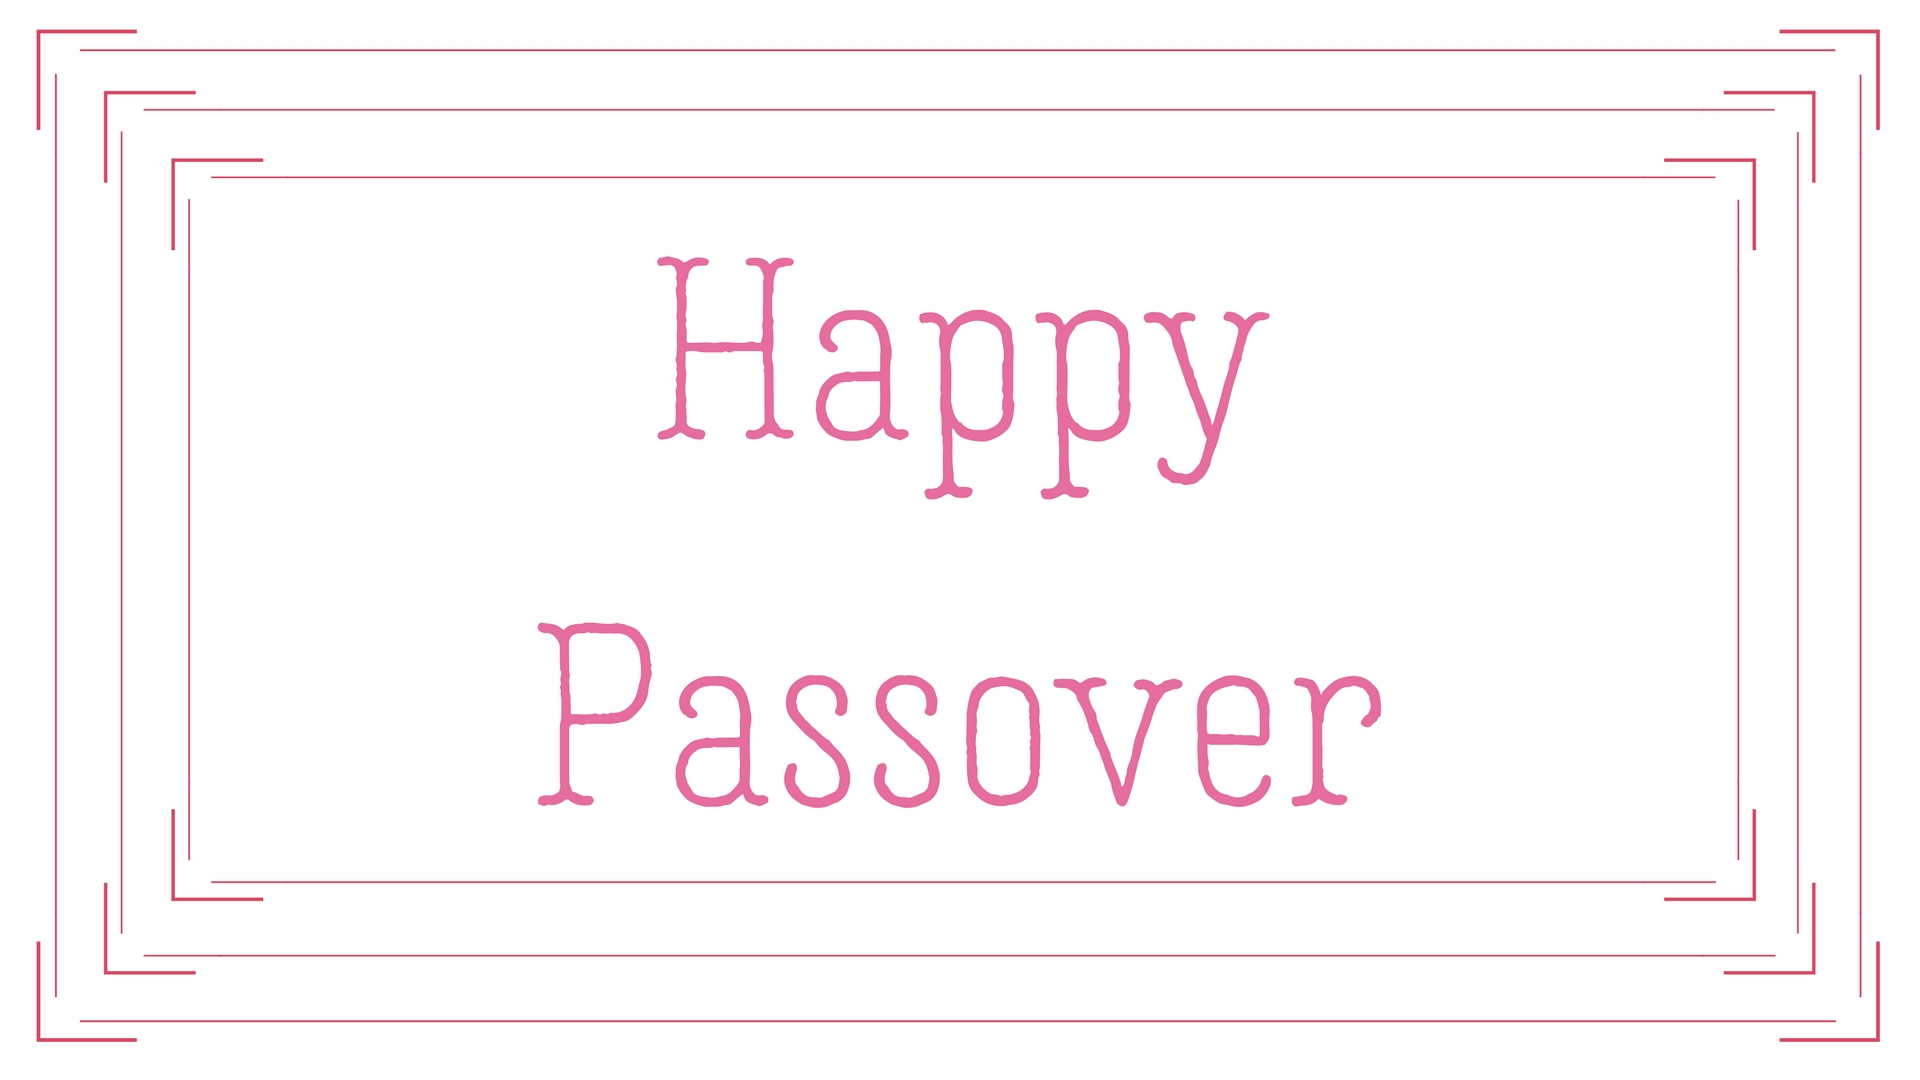 Happy Passover Rectangle Frame Greeting Card Postcard 29